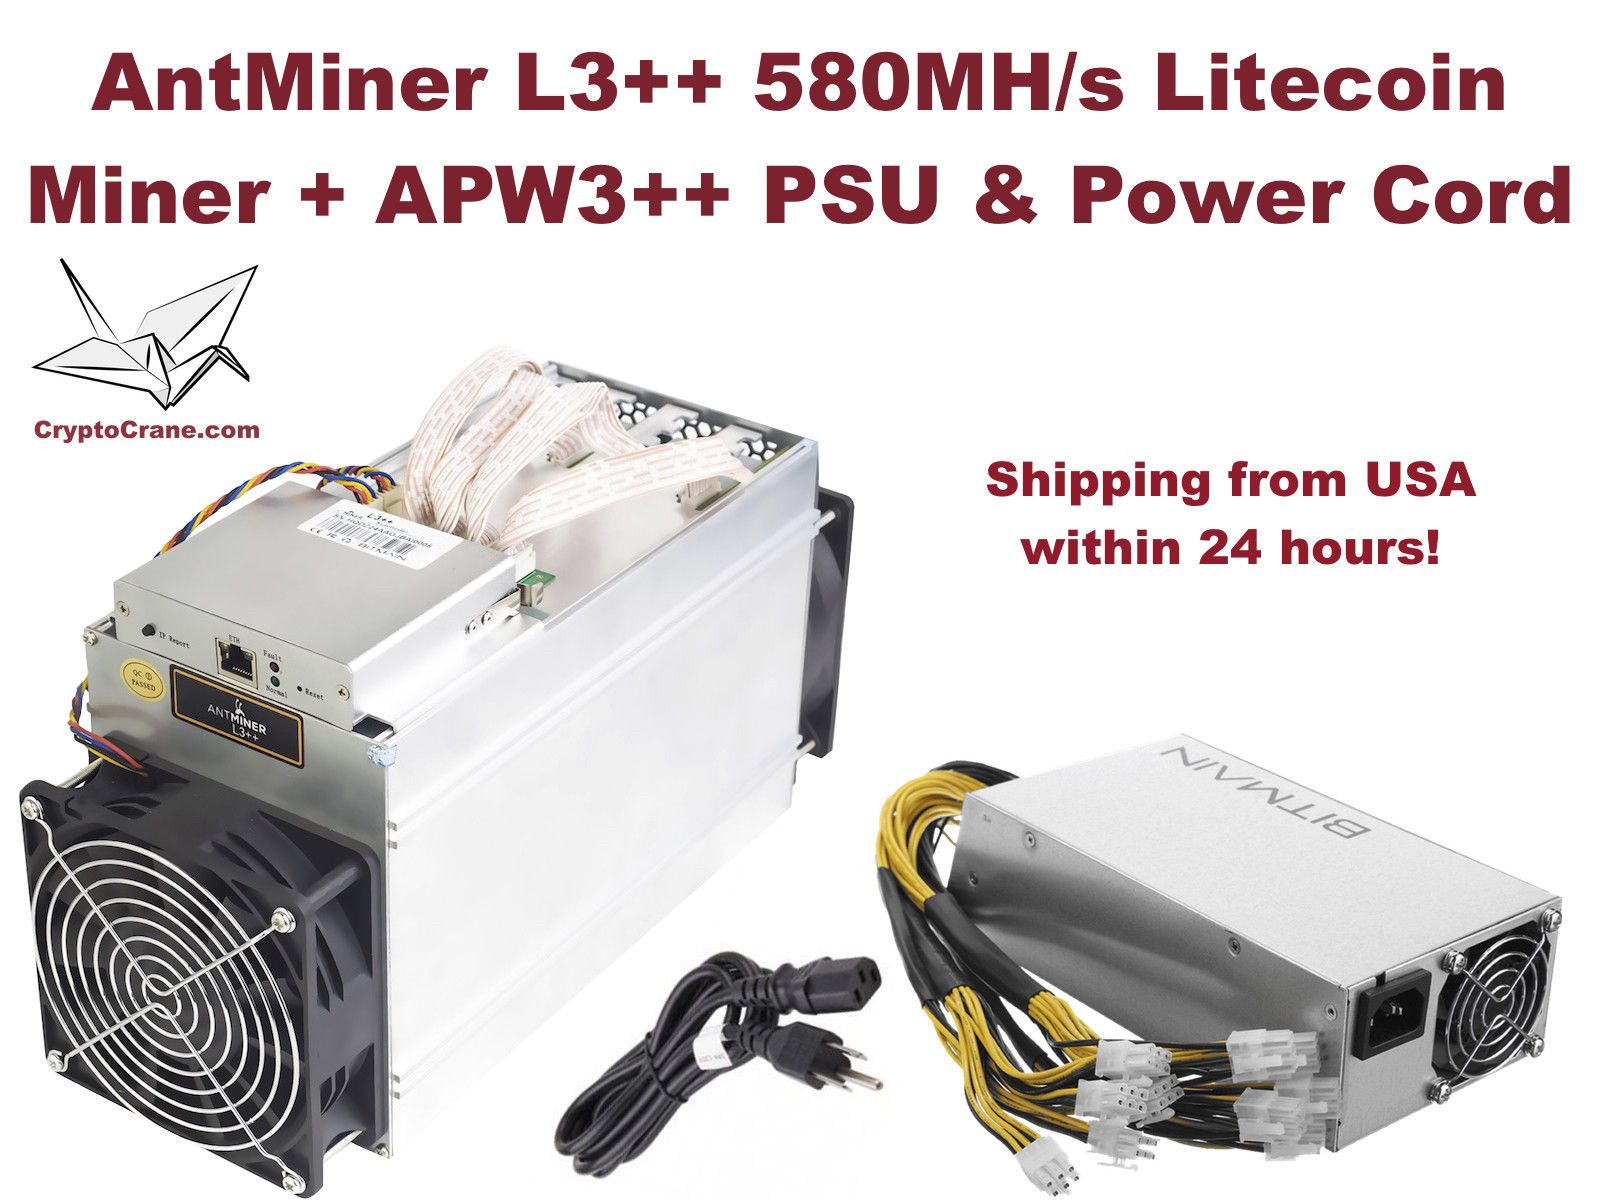 NEW Bitmain AntMiner L3++ 580 MH/s Litecoin Miner with PSU In-Hand